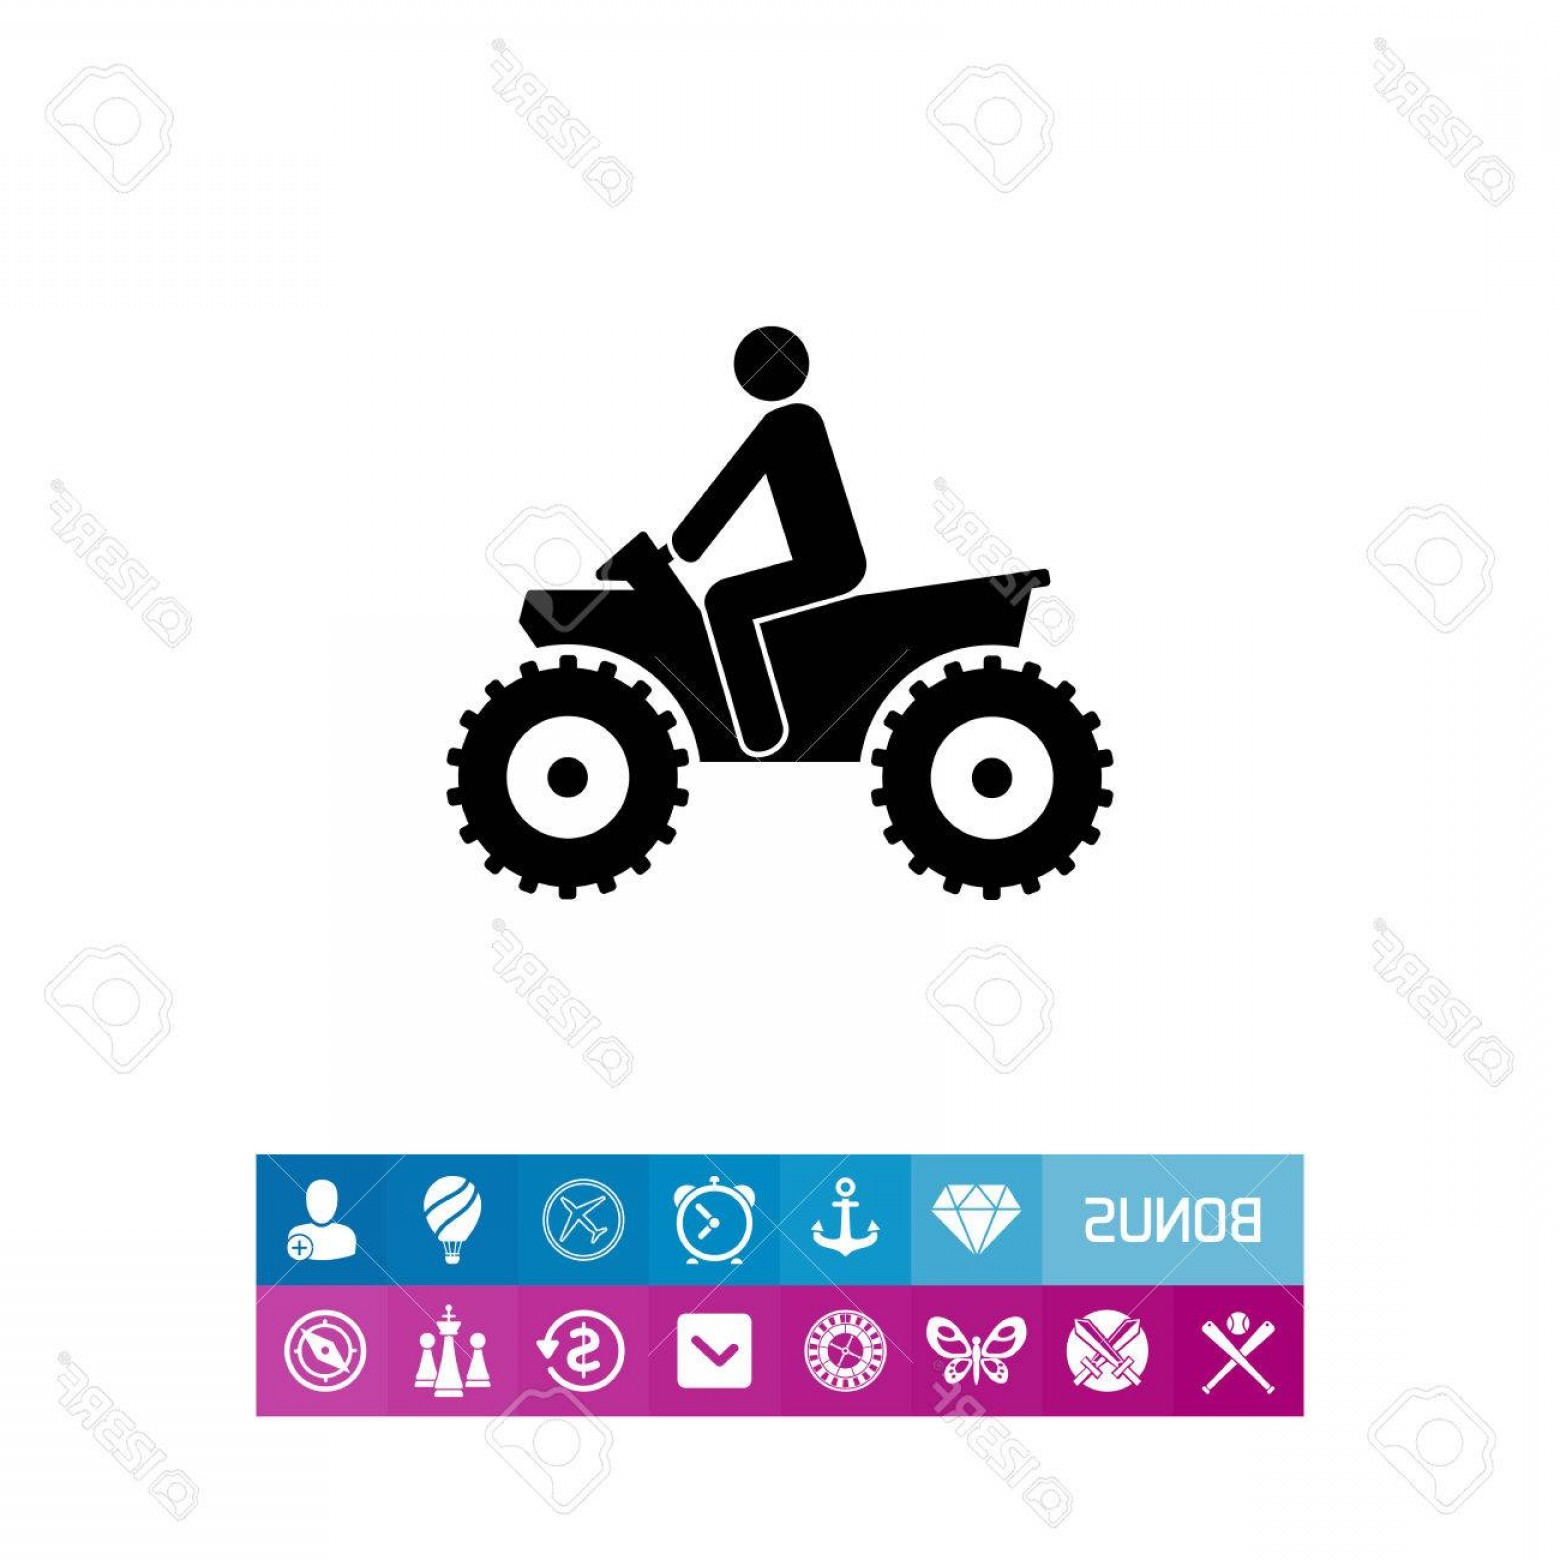 ATV Rider Vector: Photostock Vector Person Riding Quad Bike Atv Male Silhouette Four Wheeler Transport Concept Can Be Used For Transport